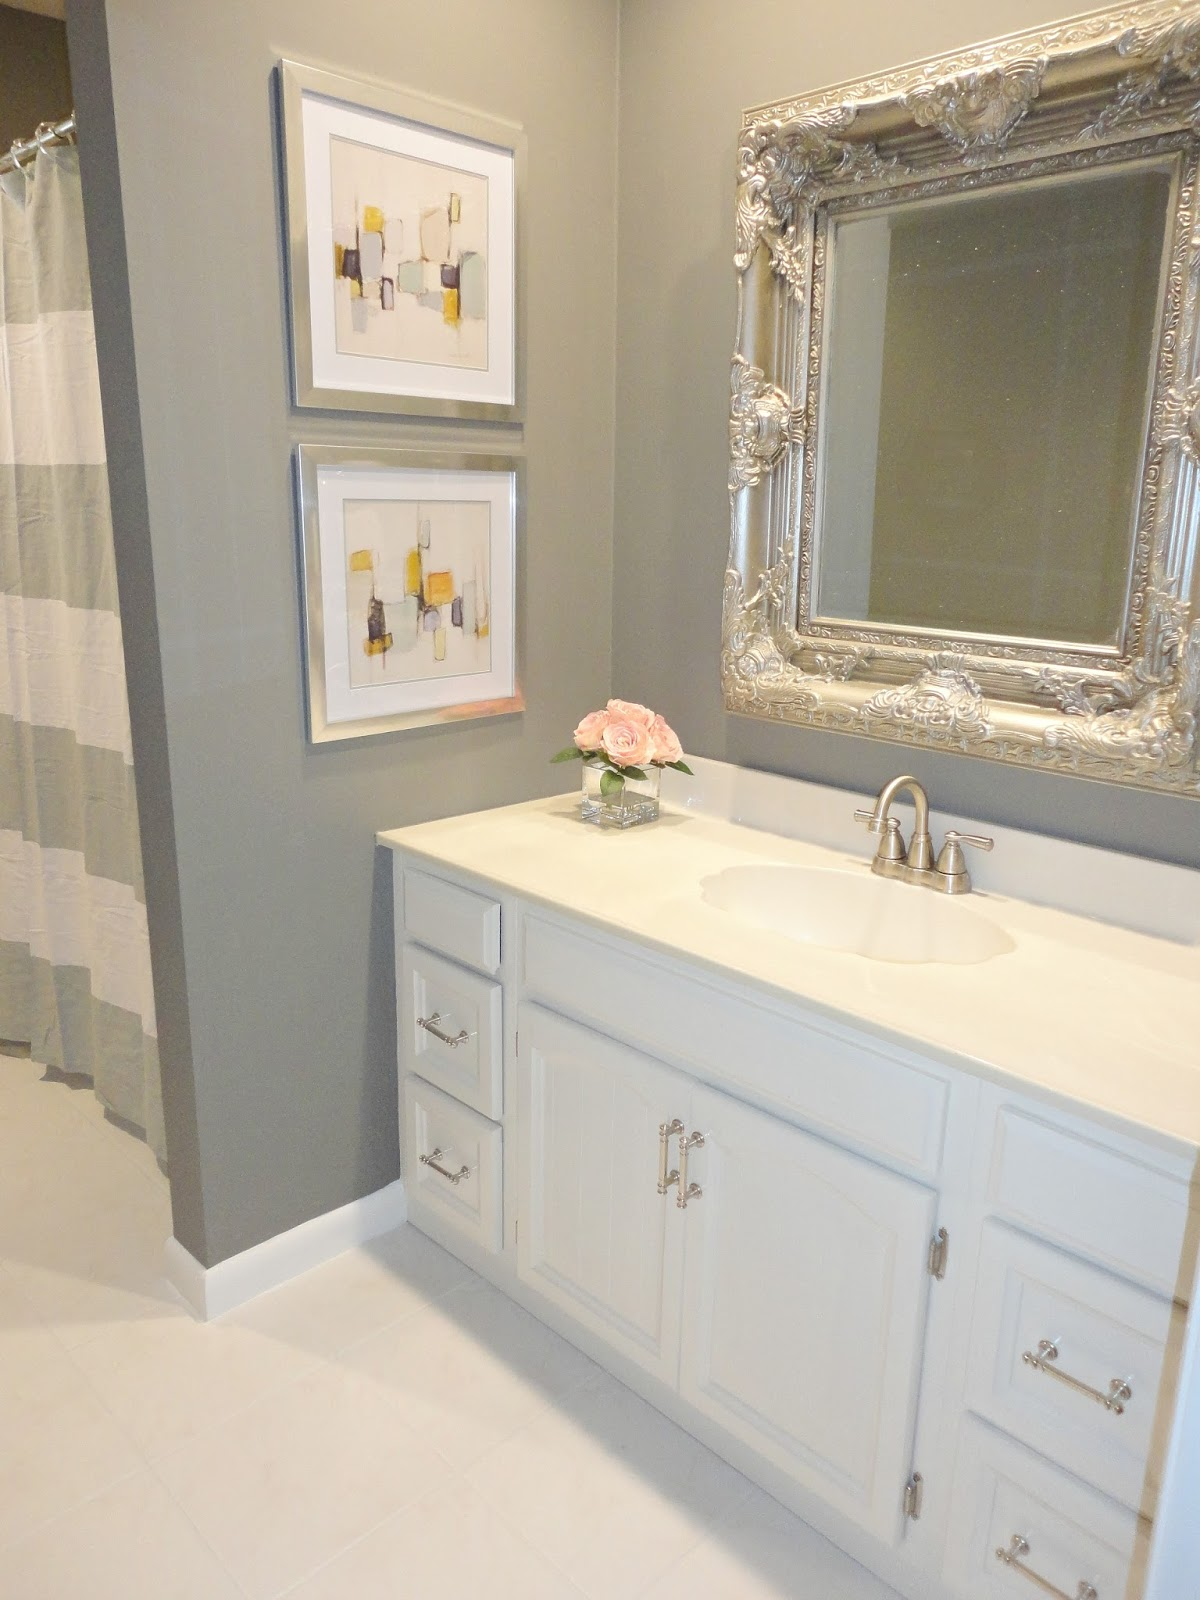 LiveLoveDIY: DIY Bathroom Remodel on a Budget